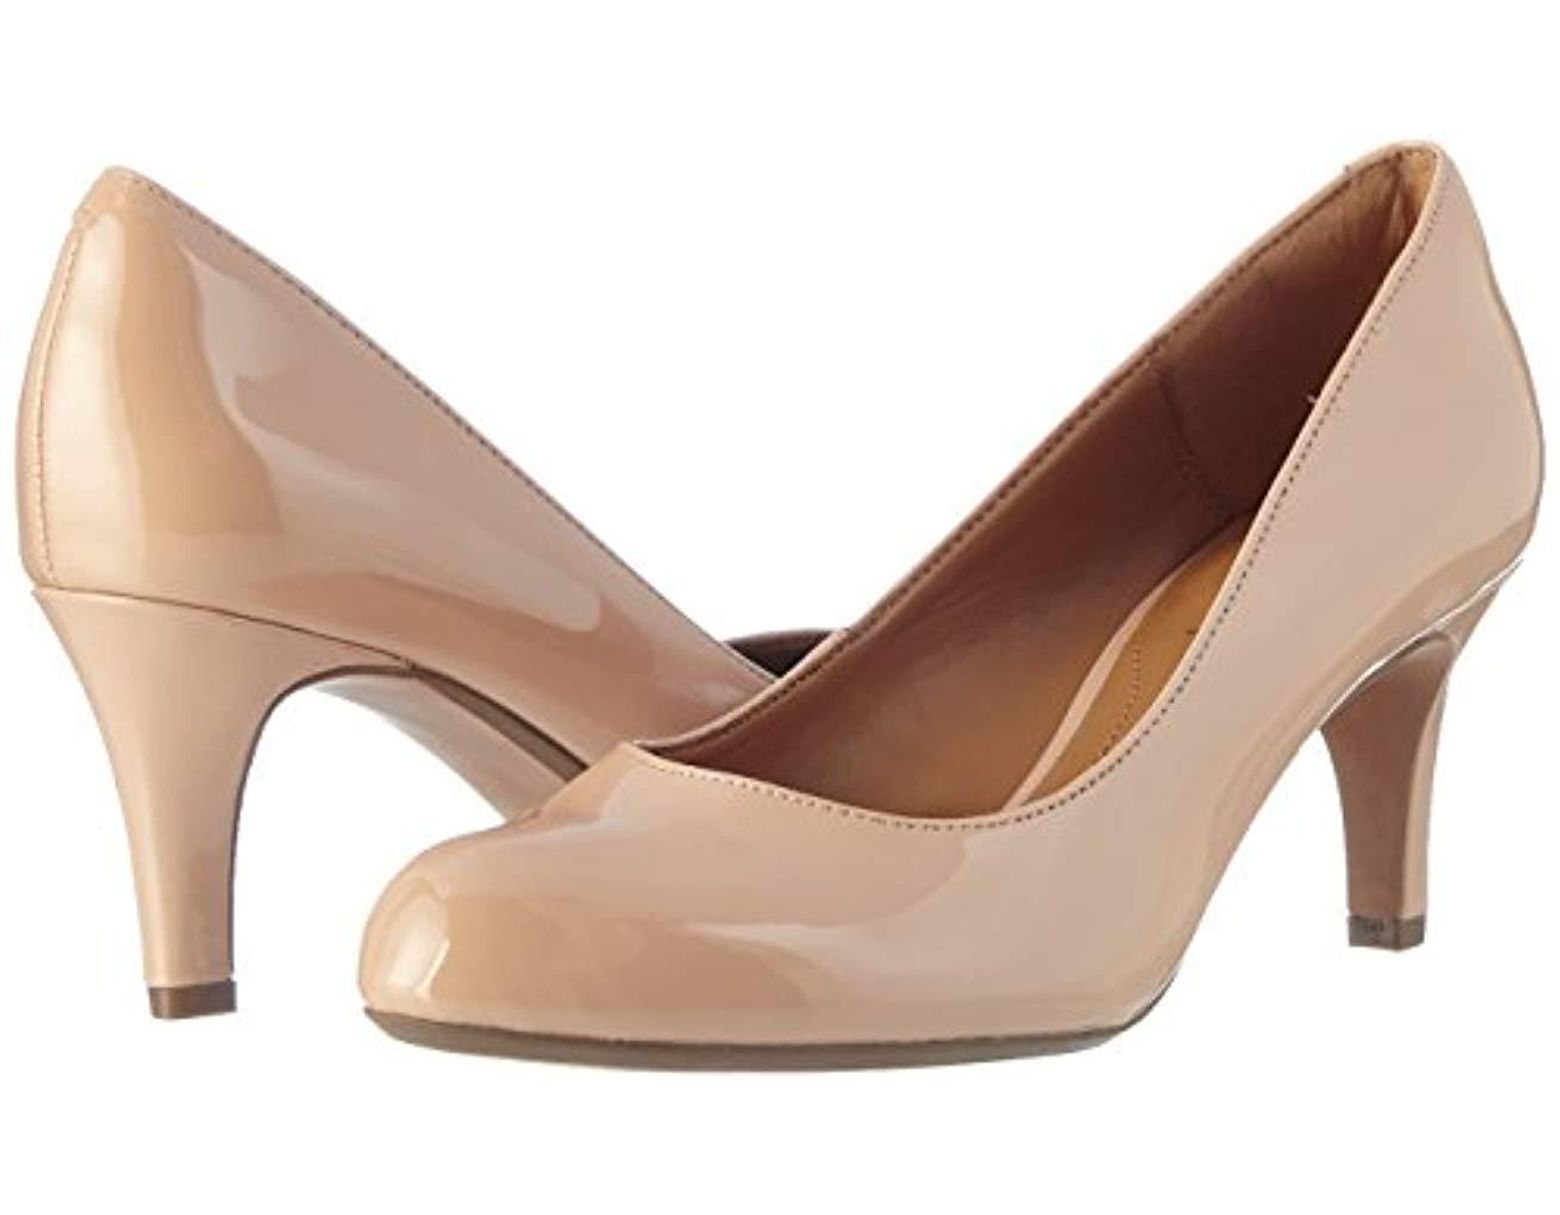 Clarks Arista Abe Closed toe Pumps in Natural Save 11% Lyst